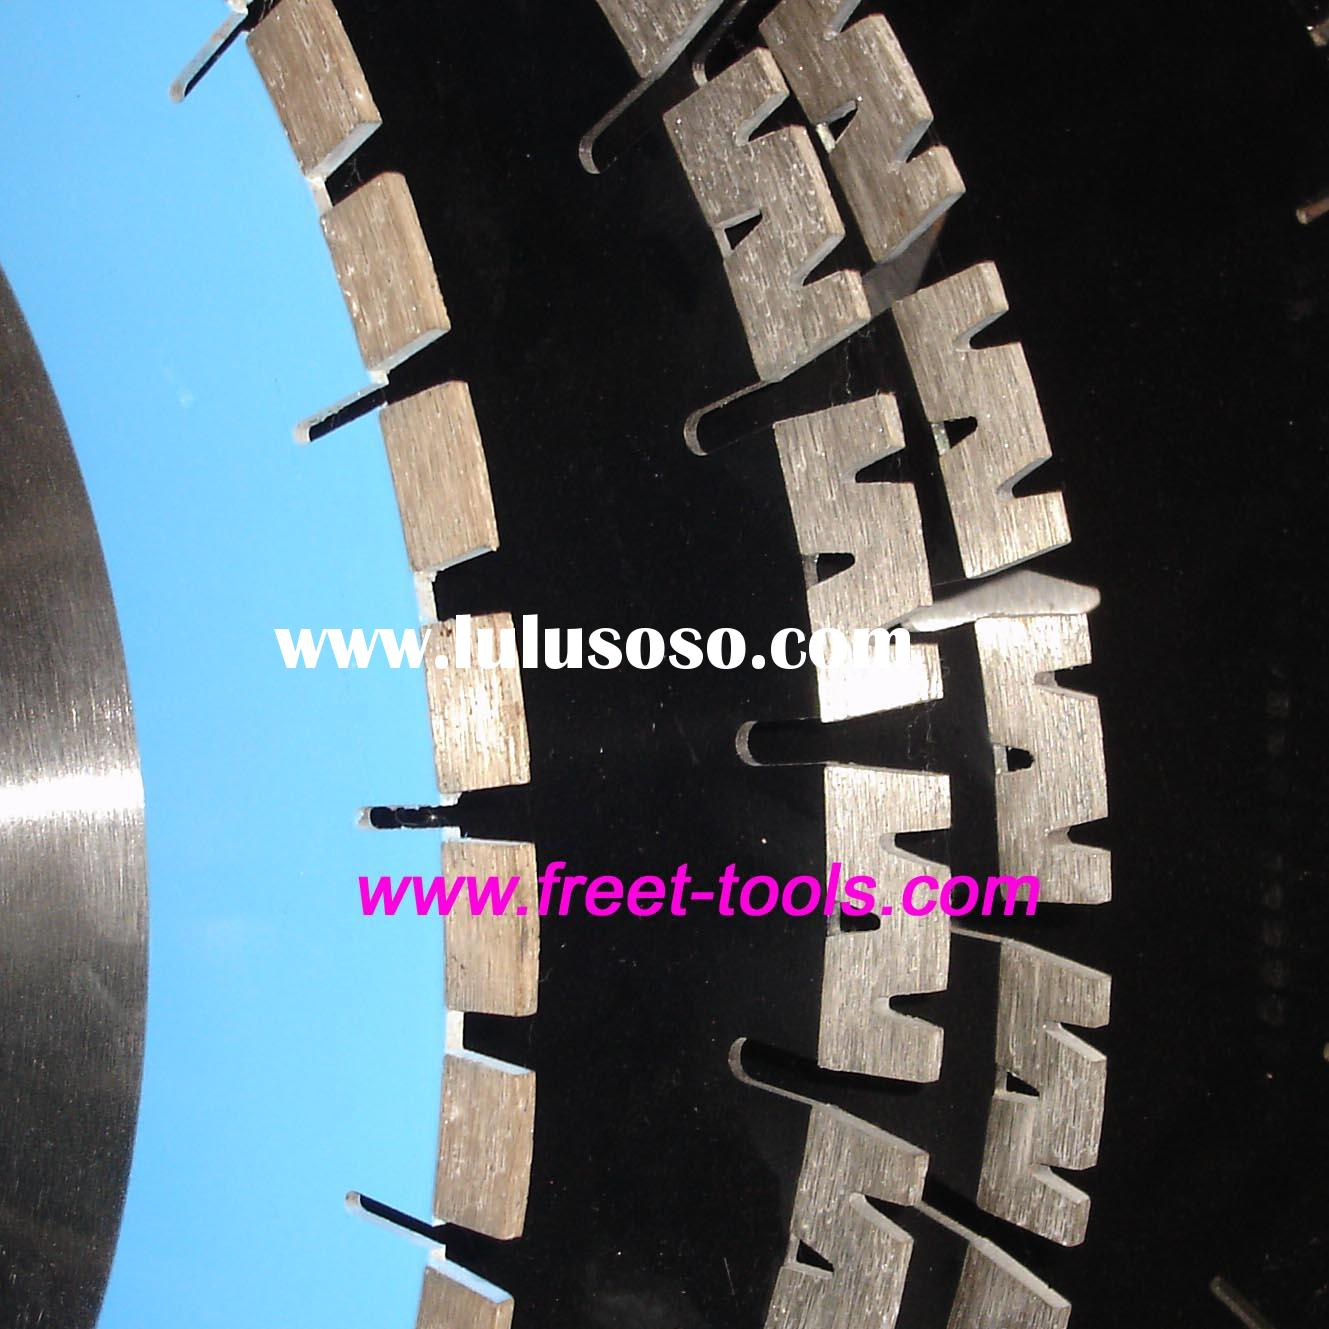 Segmented Saw Blade for marble,granite,concrete,asphalt,tiles,porcelain,demolition,diamond cutting d